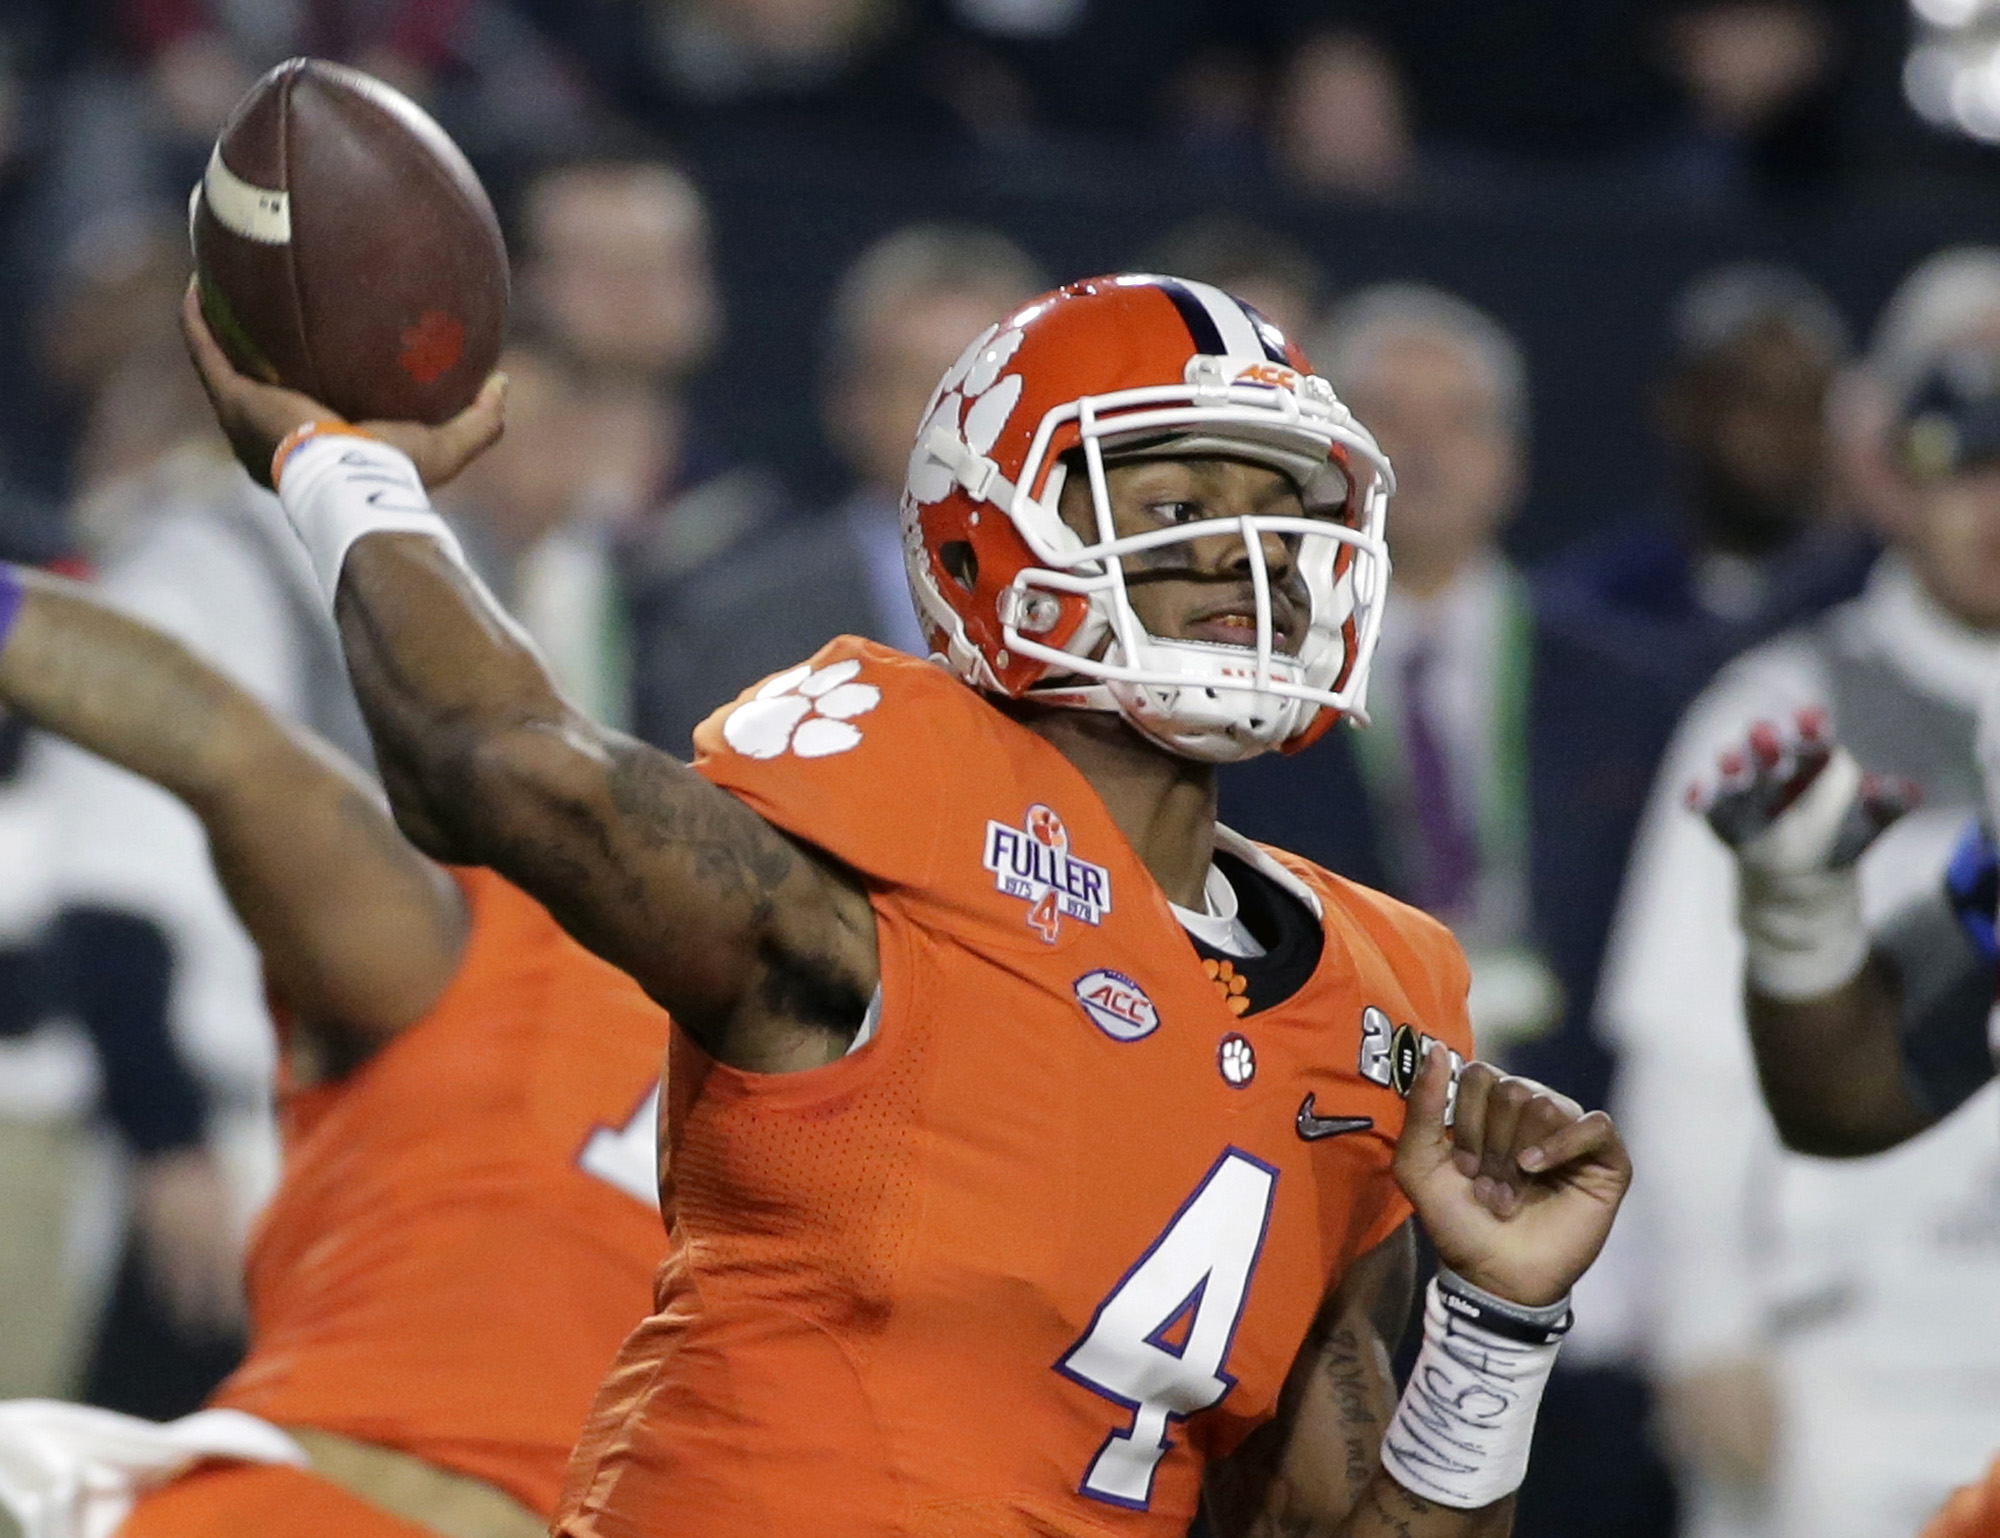 FILE - In this Jan. 11, 2016, file photo, Clemson quarterback Deshaun Watson throws during the first half of the NCAA college football playoff championship game against Alabama, in Glendale, Ariz. Watson is the favorite to win the Heisman Trophy and the l